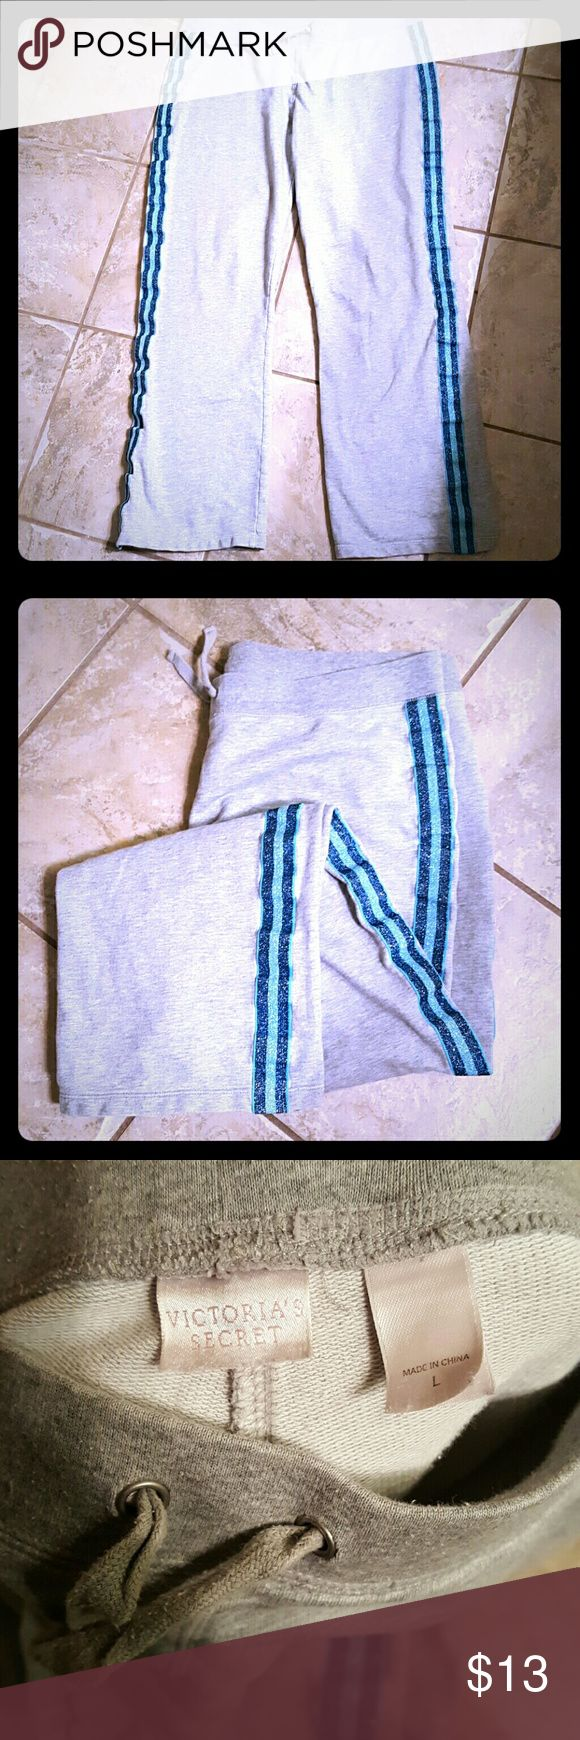 Victorias secret sleep pants/ sweat pants Well loved,no stains,snags,holes etc. Great condition. The back is plain like the front,just sparkly stripes down the legs. Material of a regular sweatshirt. 100% cotton. Final price. Victoria's Secret Pants